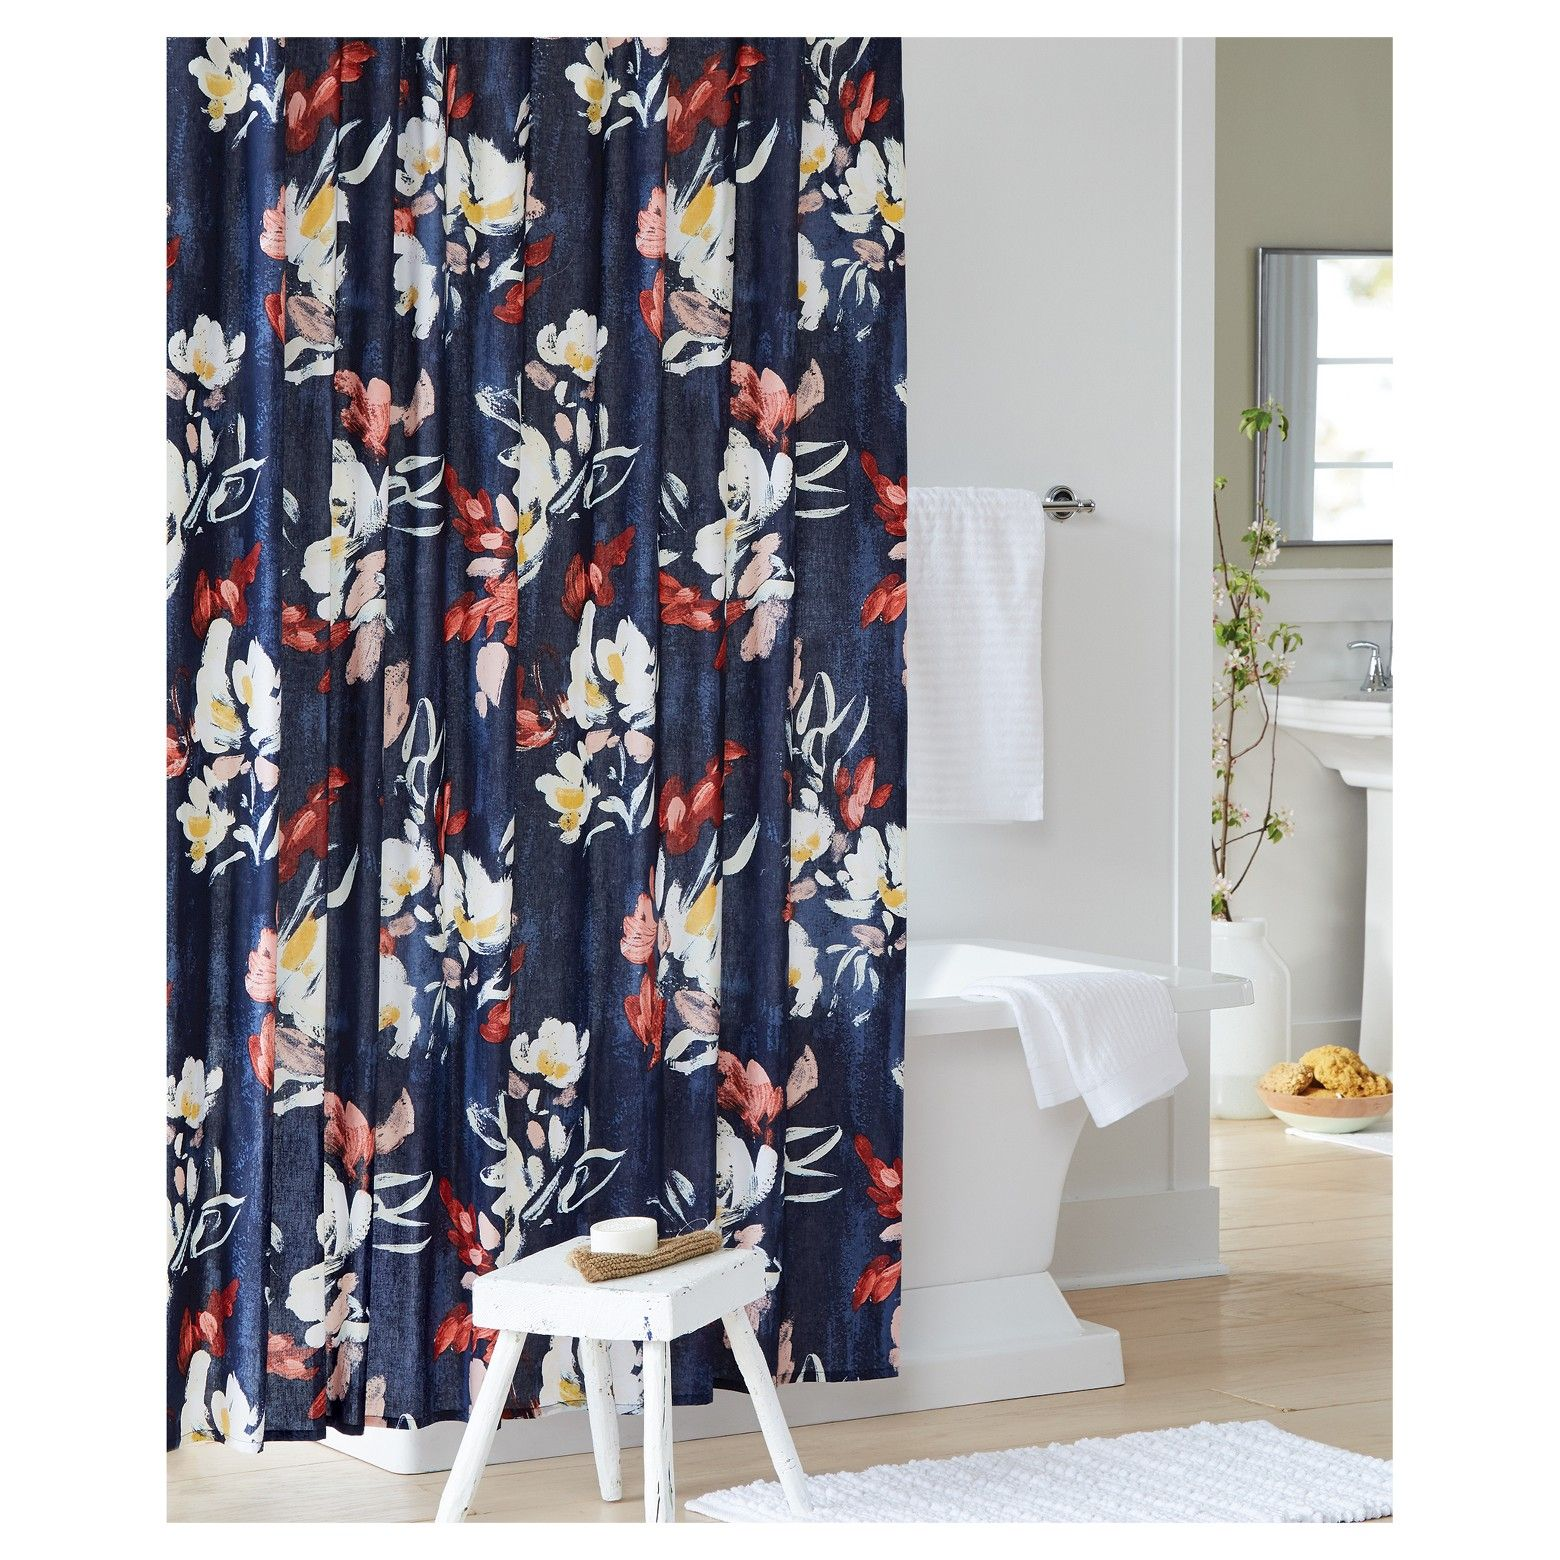 Refresh Your Bathroom Decor With The Threshold Floral Printed Shower